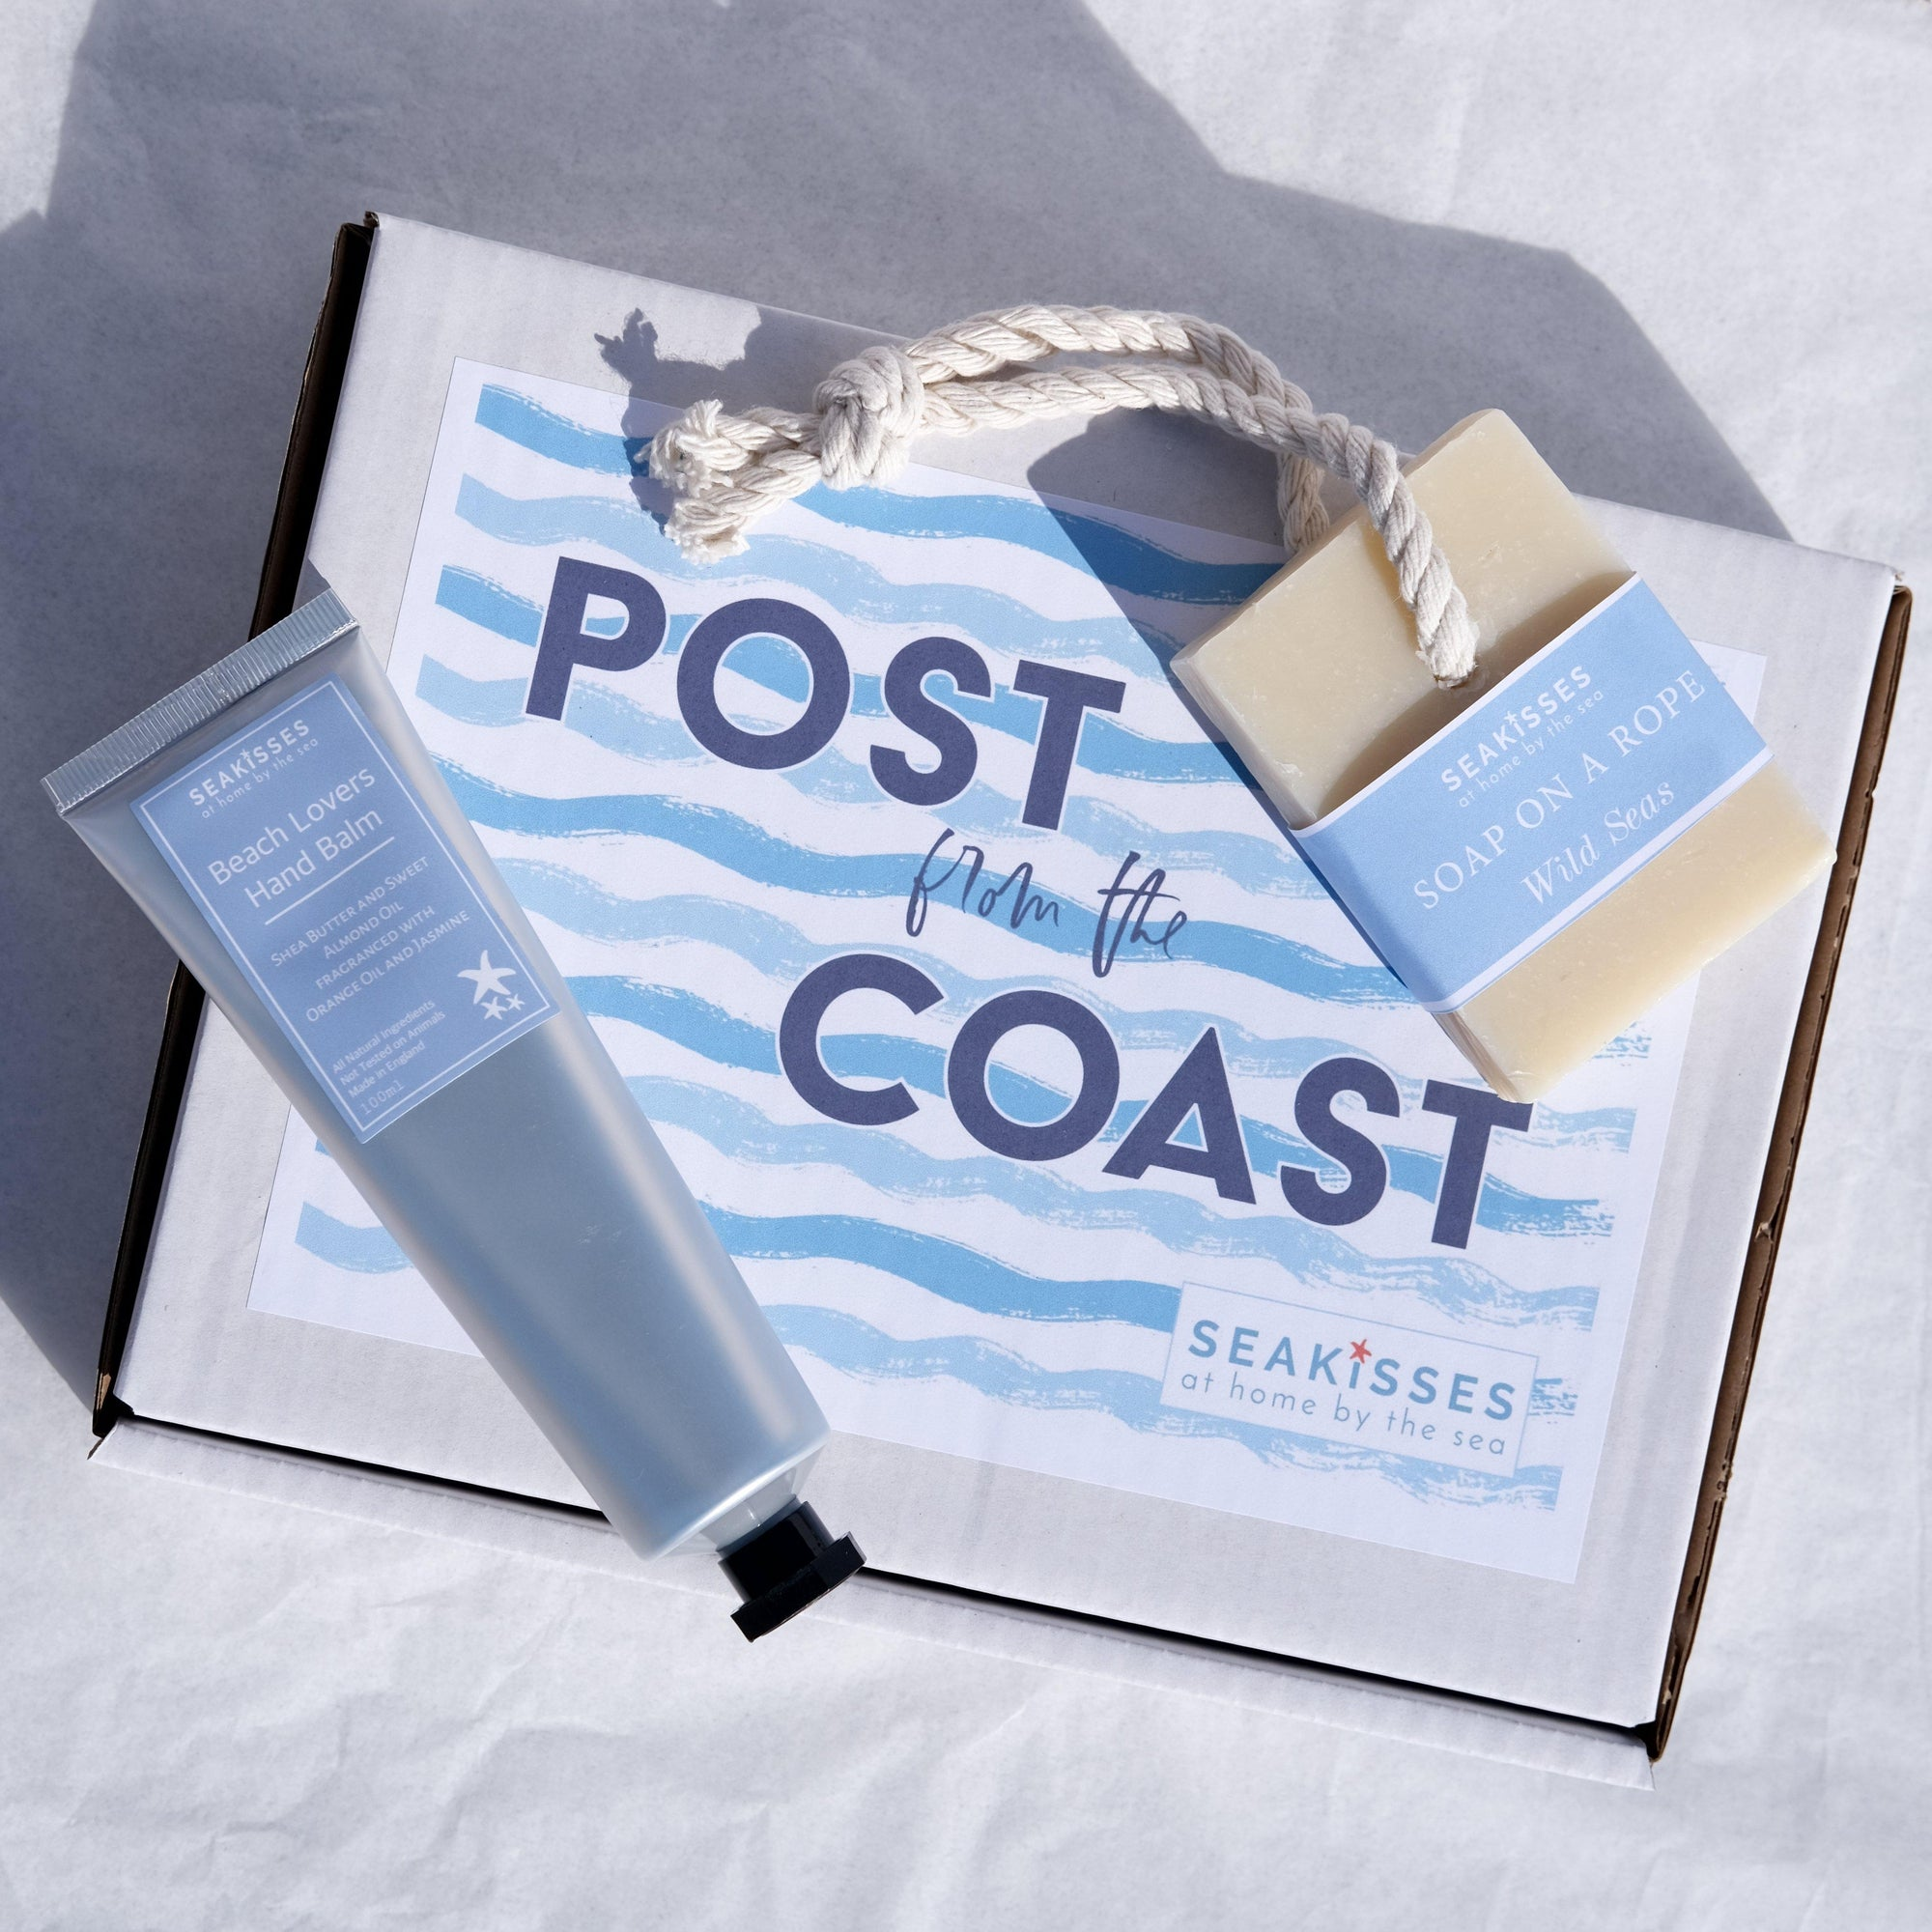 The Beach Walker's Postal Gift Box-SeaKisses